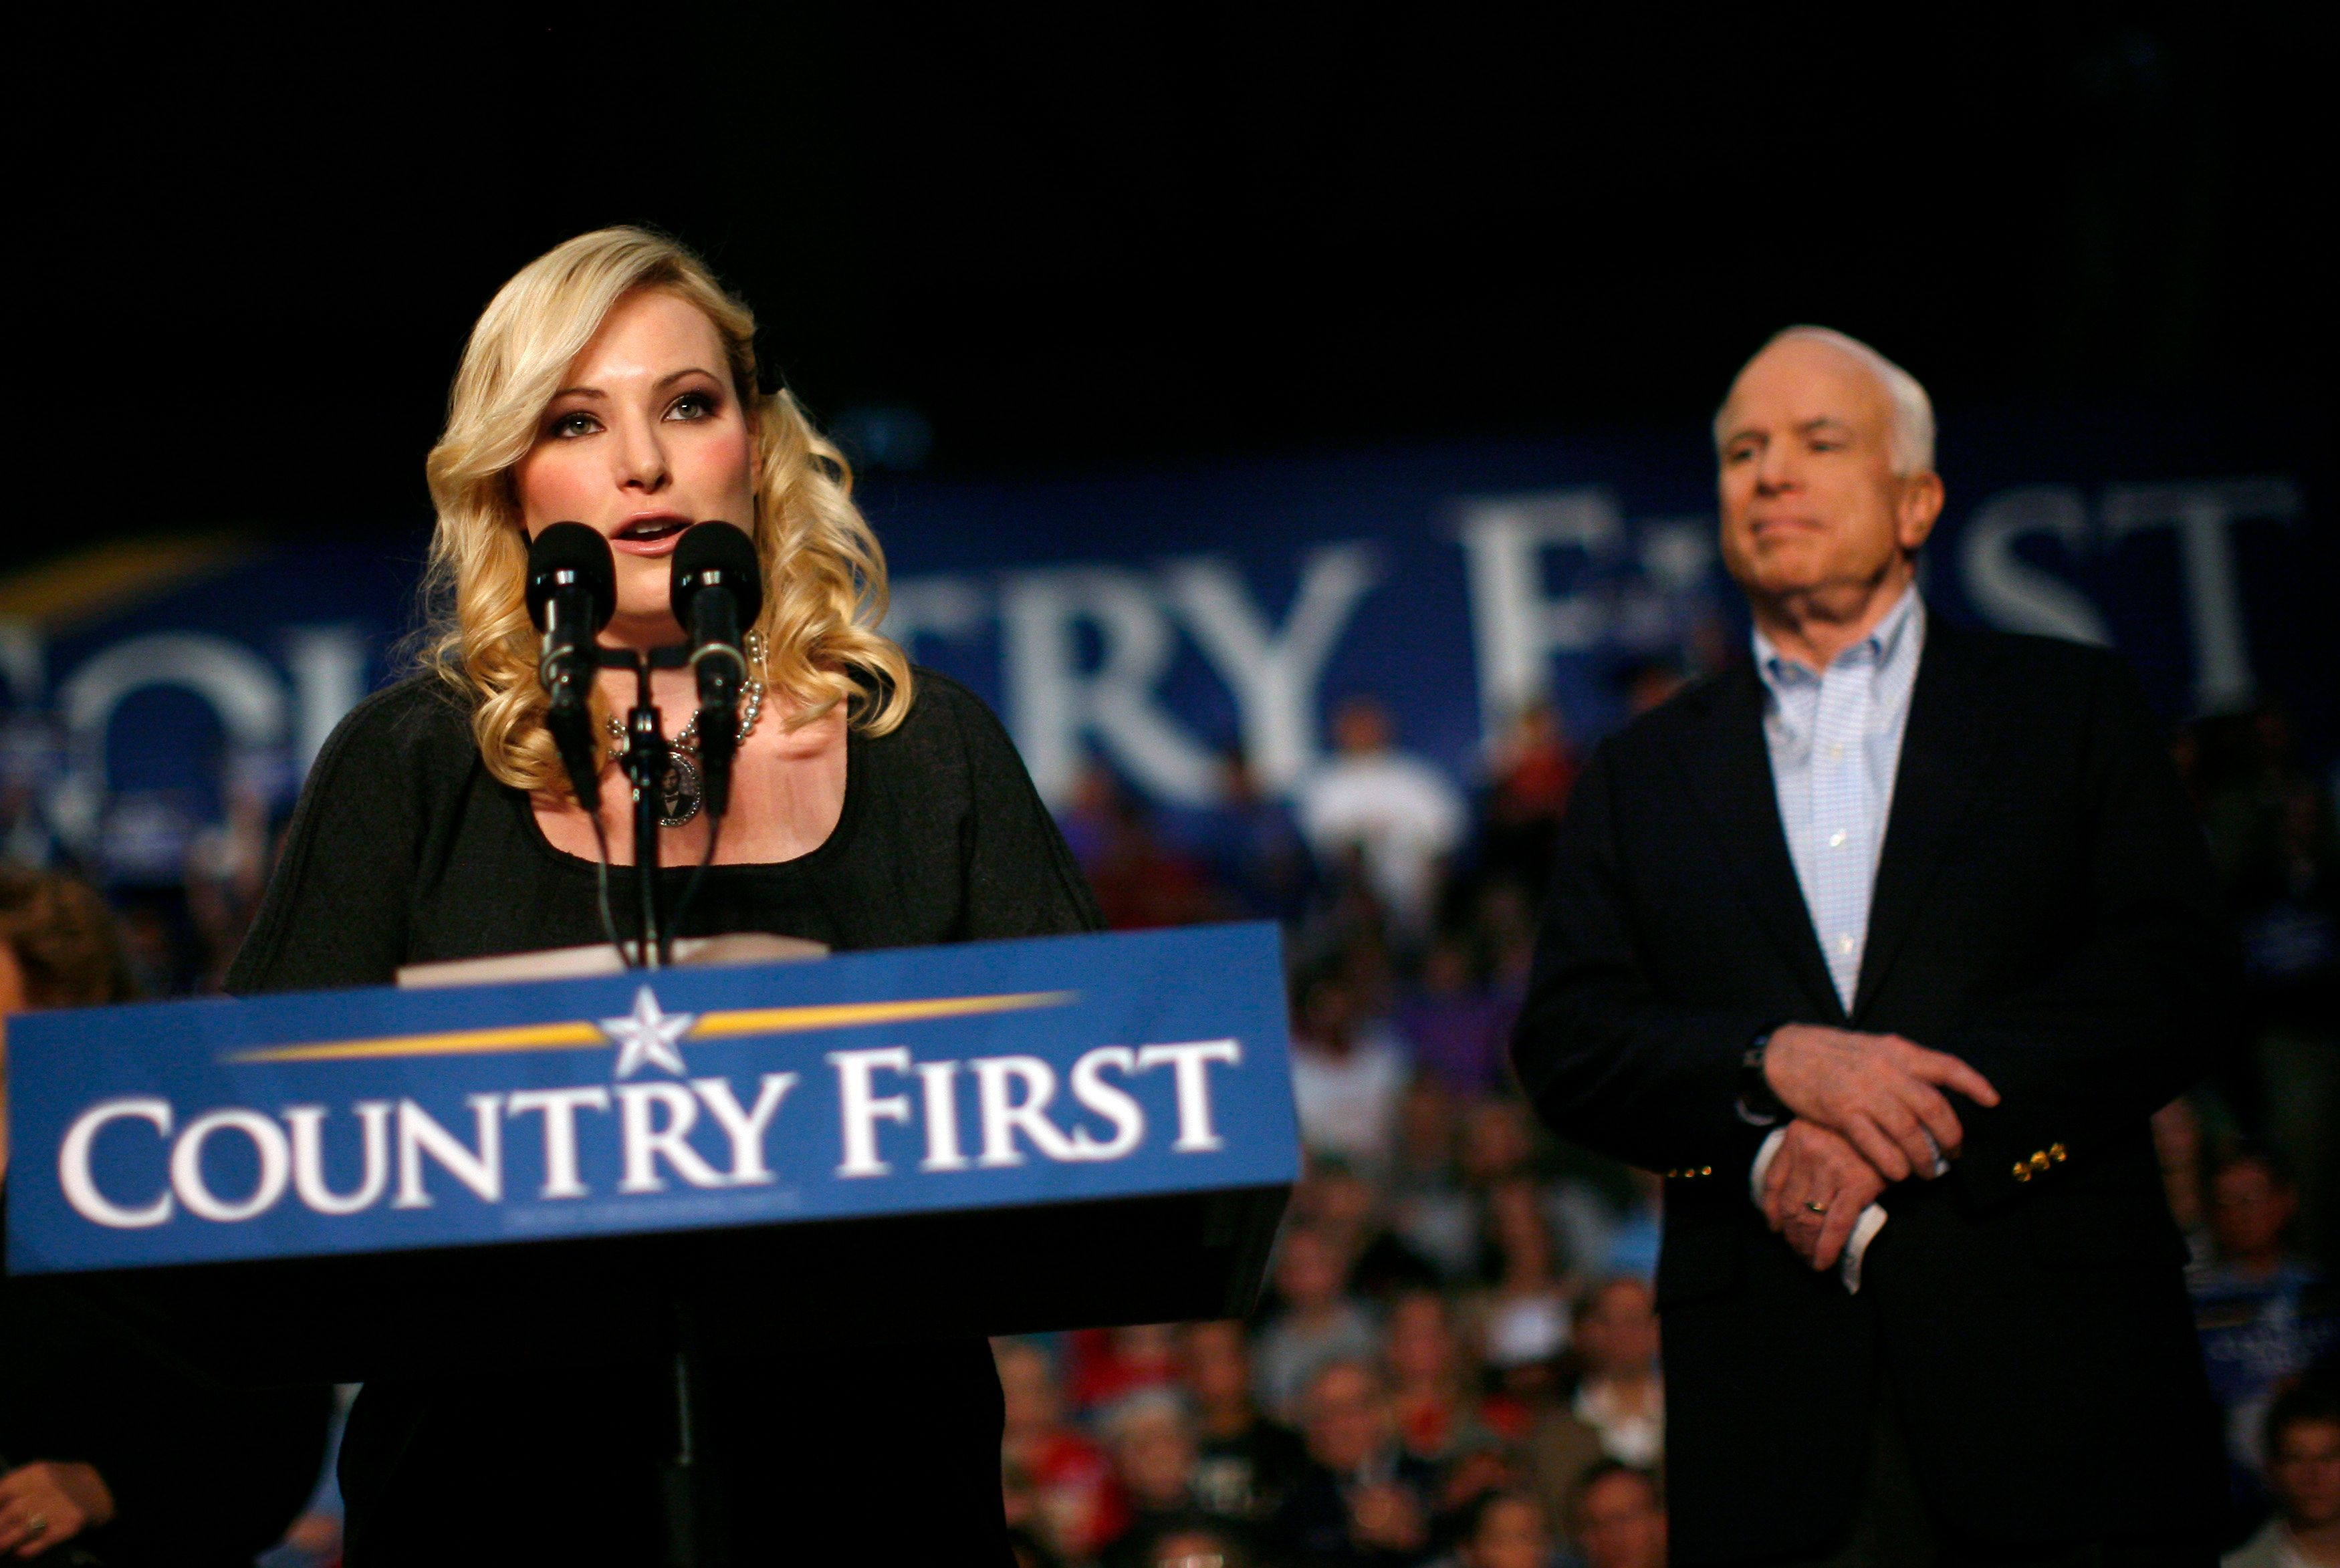 Meghan McCain introduces her father, then-Republican presidential nominee John McCain, during an Ohio rally in 2008.